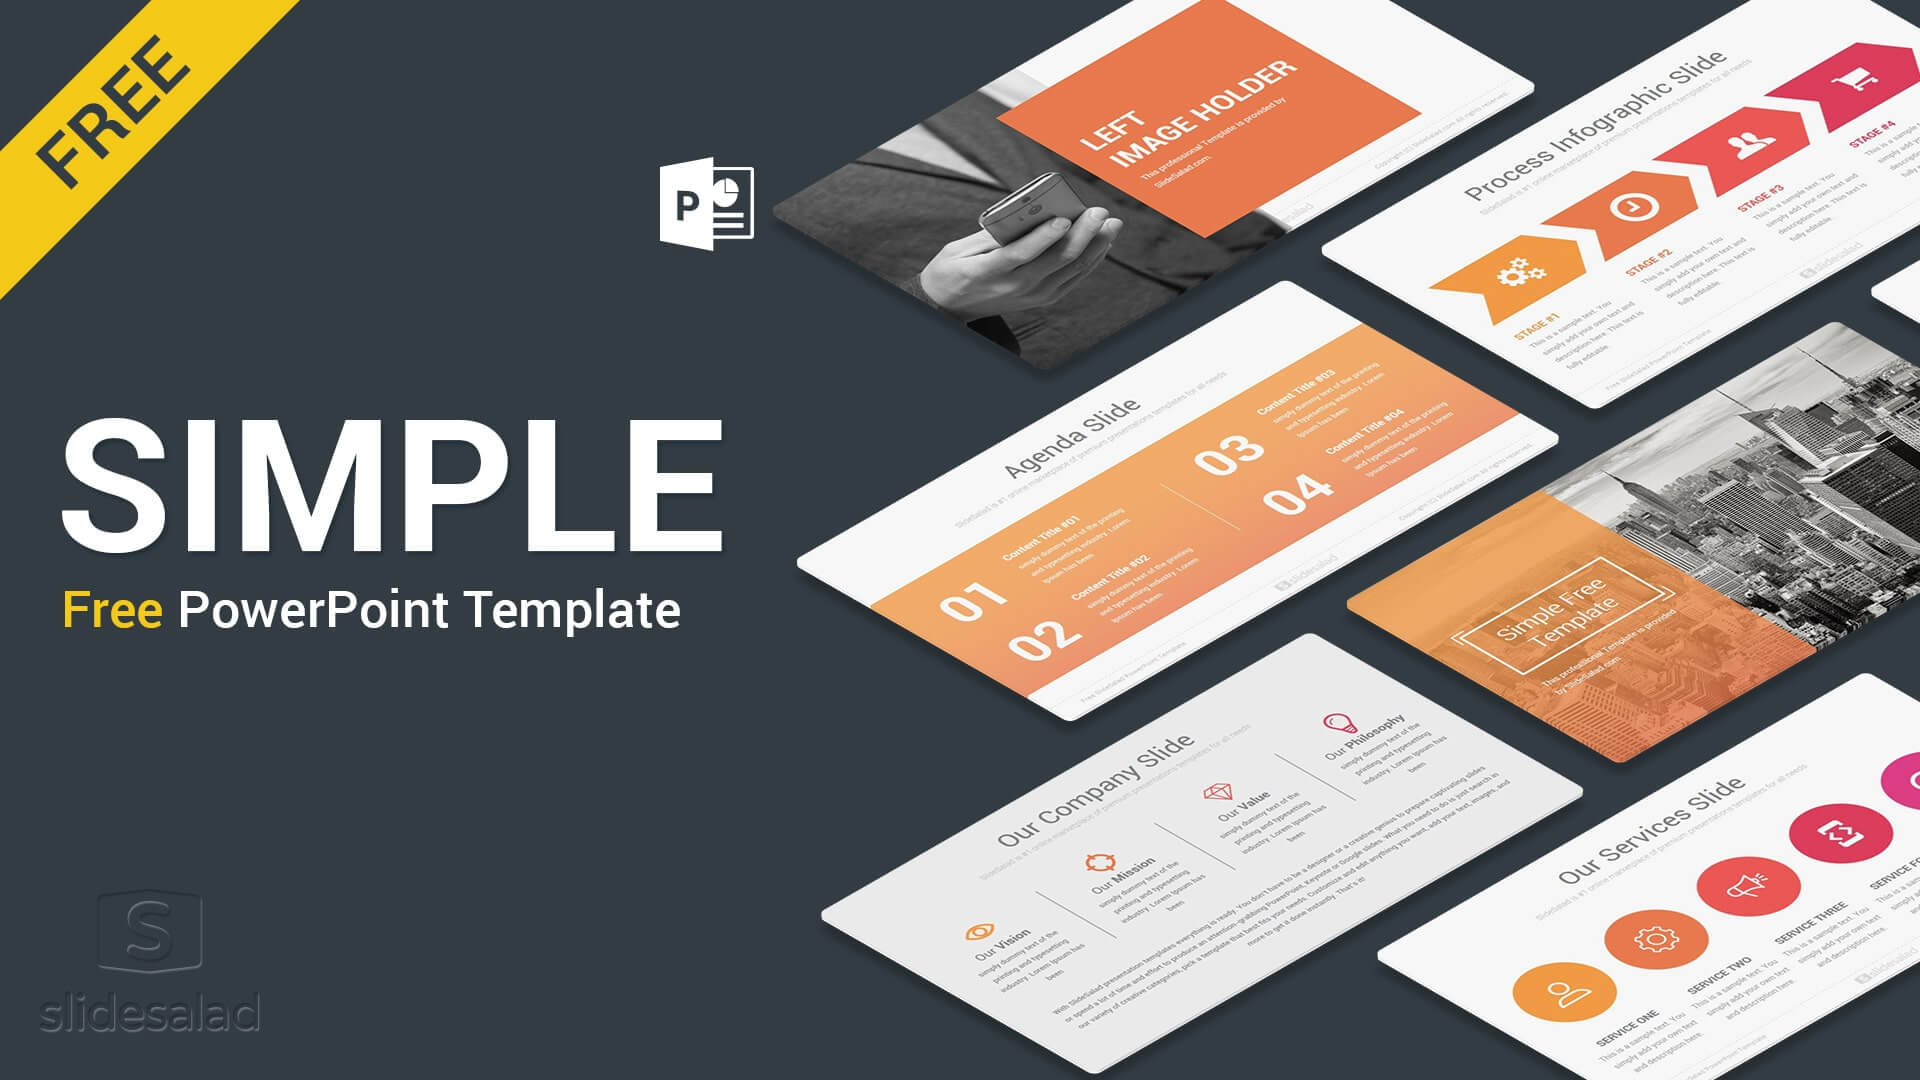 Simple Free Powerpoint Presentation Template - Free Download For Free Powerpoint Presentation Templates Downloads